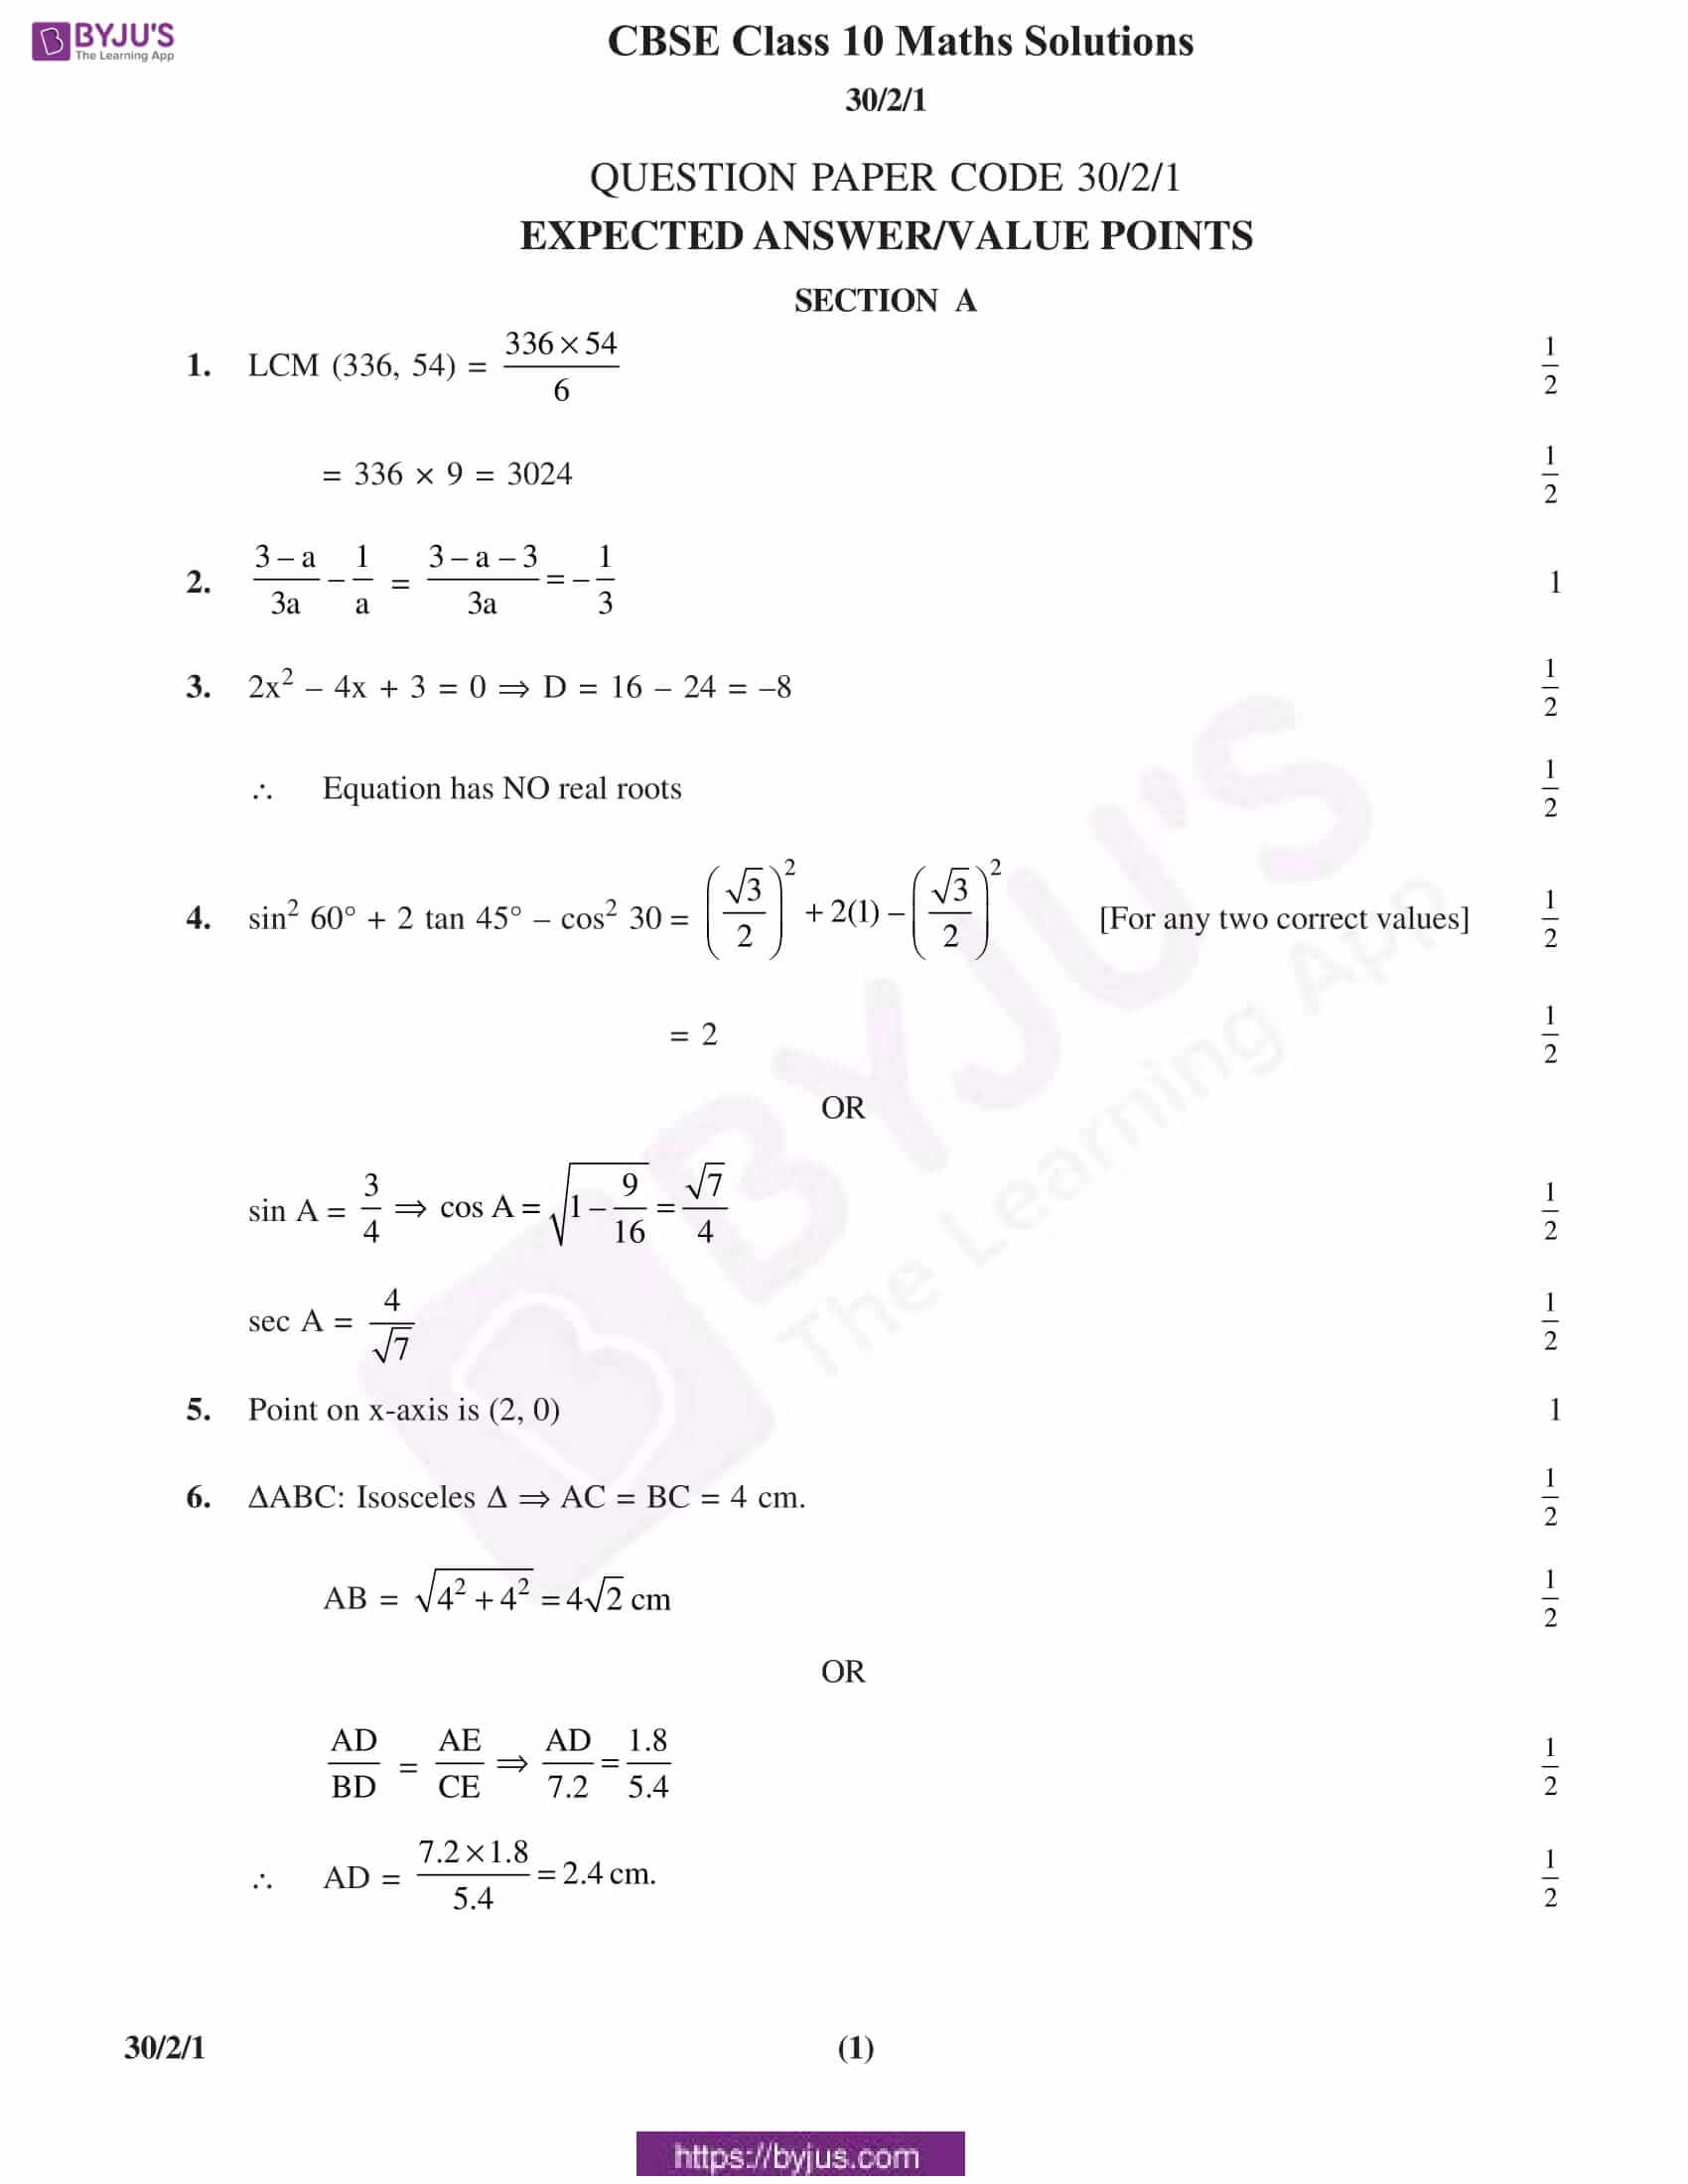 CBSE Class 10 Maths Solution PDF 2019 Set 2 01